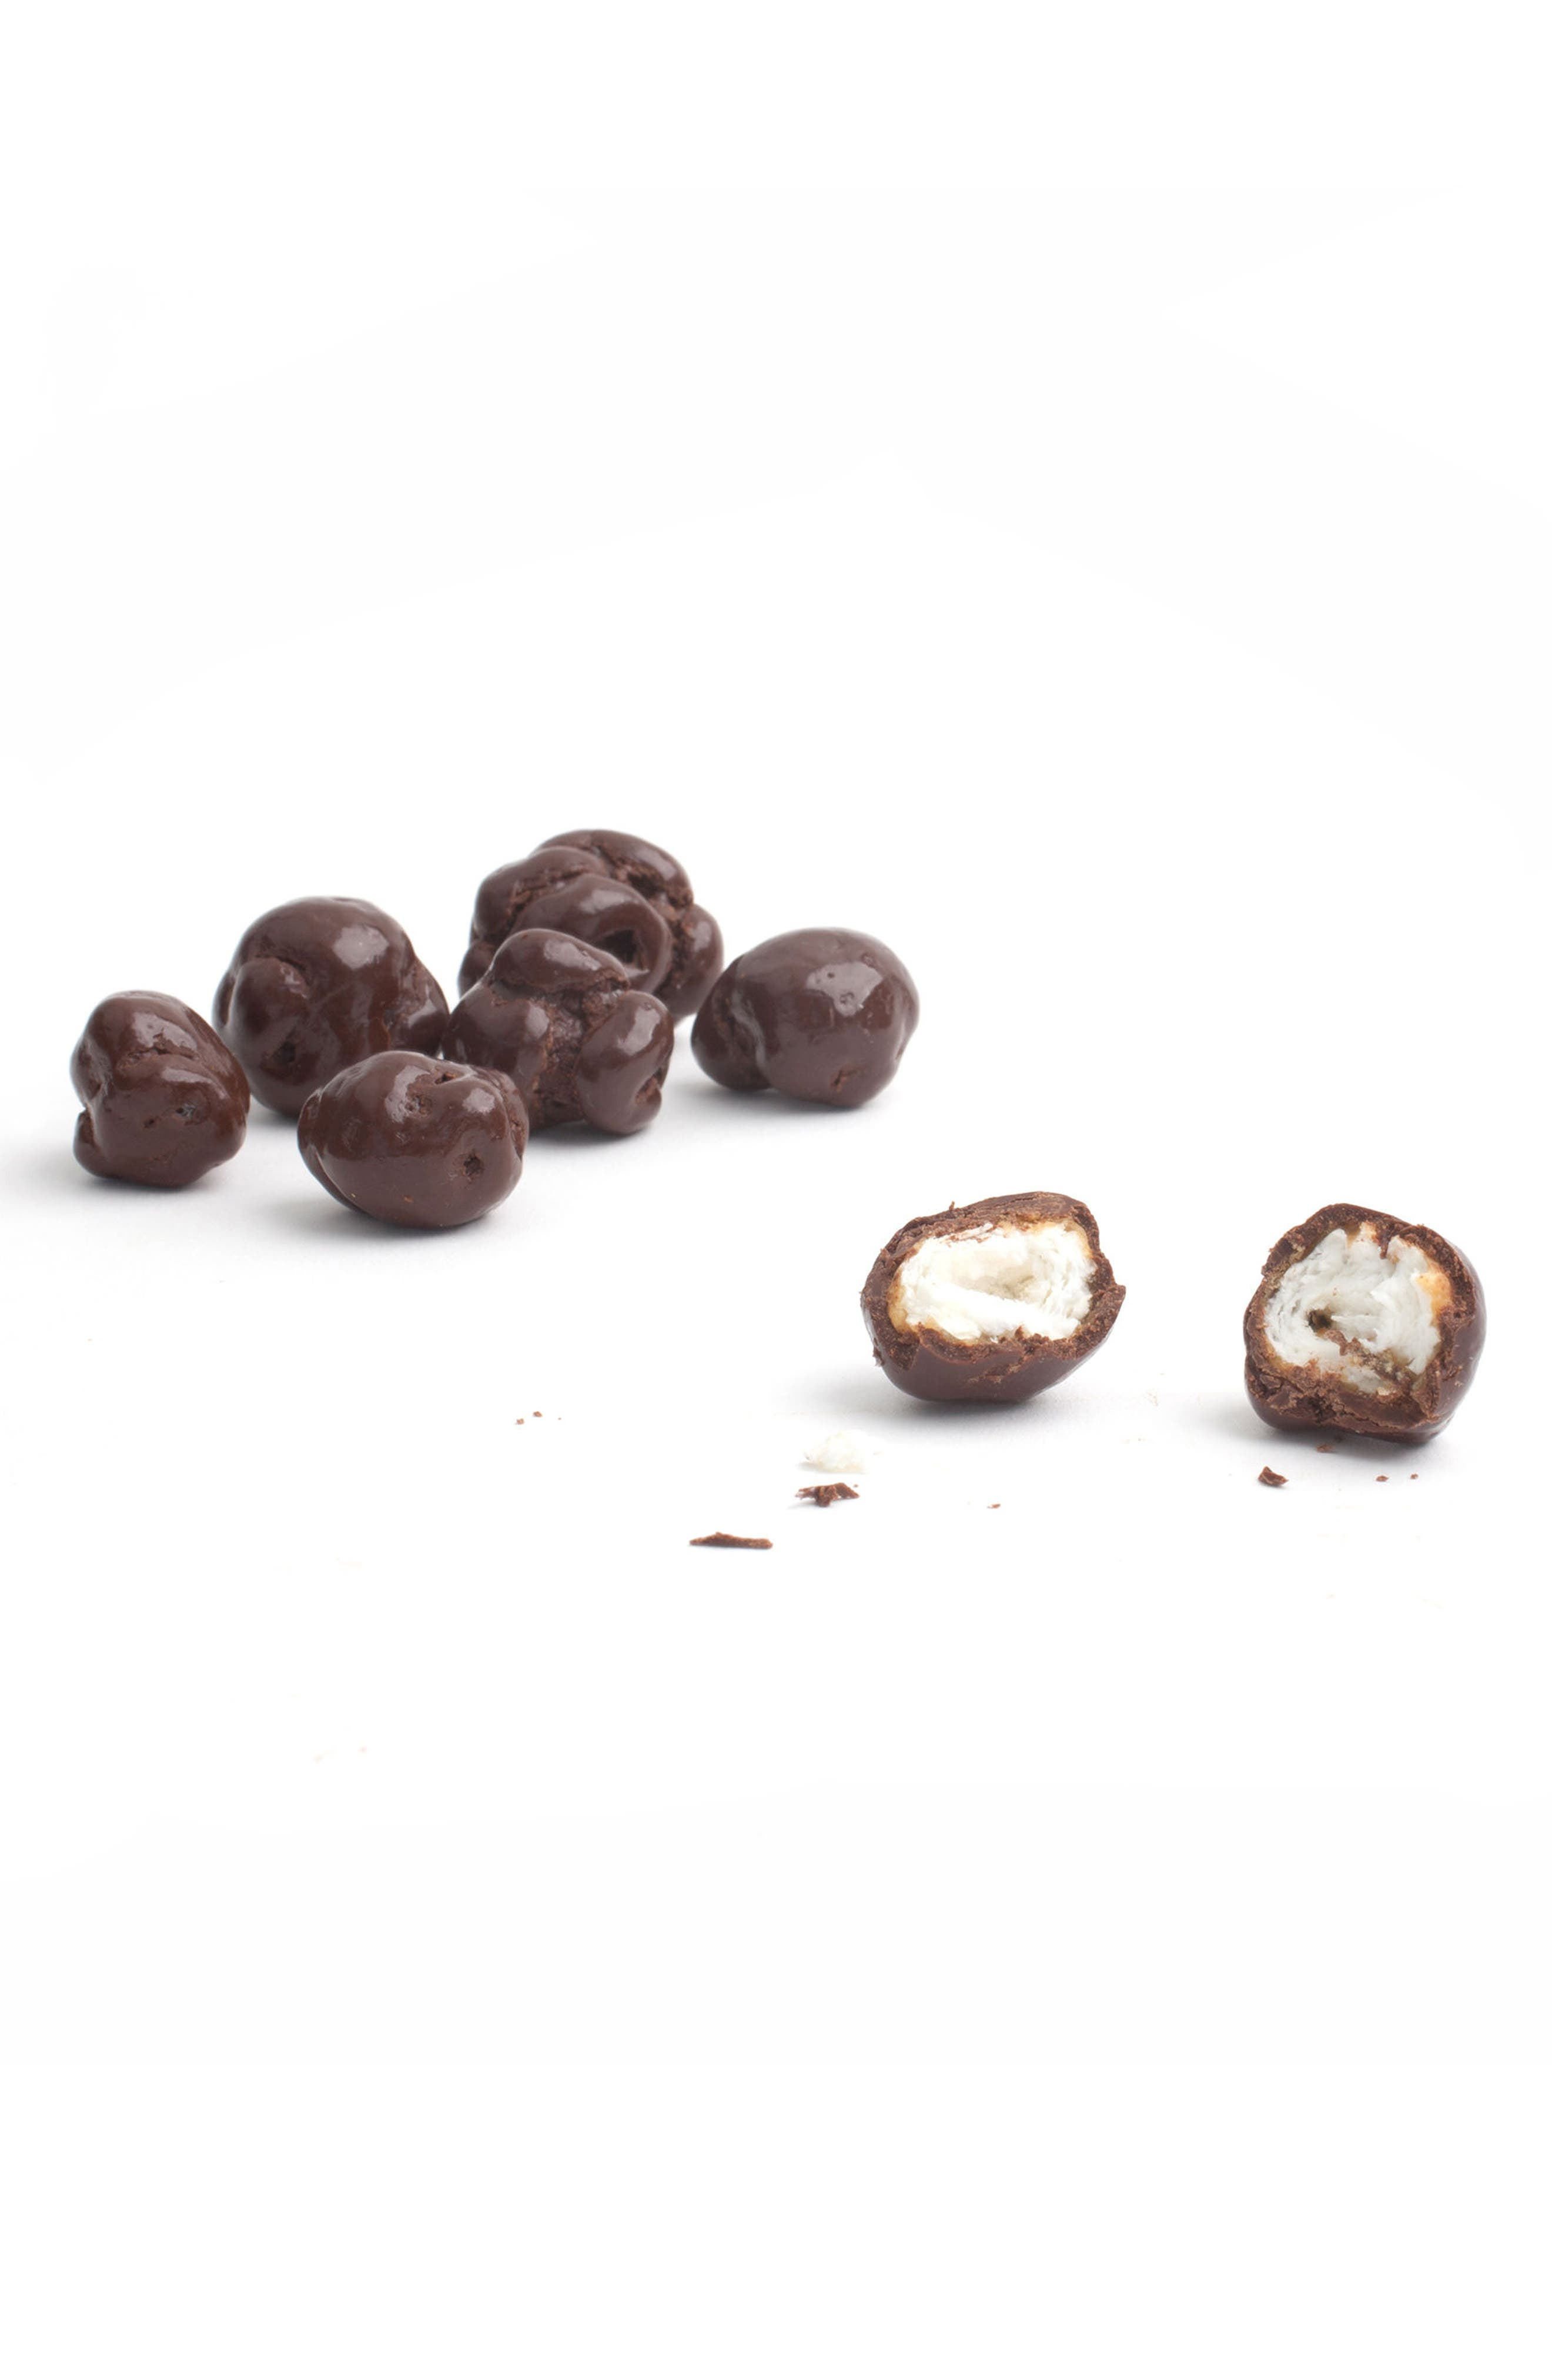 Alternate Image 3  - sugarfina Dark Chocolate & Sea Salt Caramel Popcorn